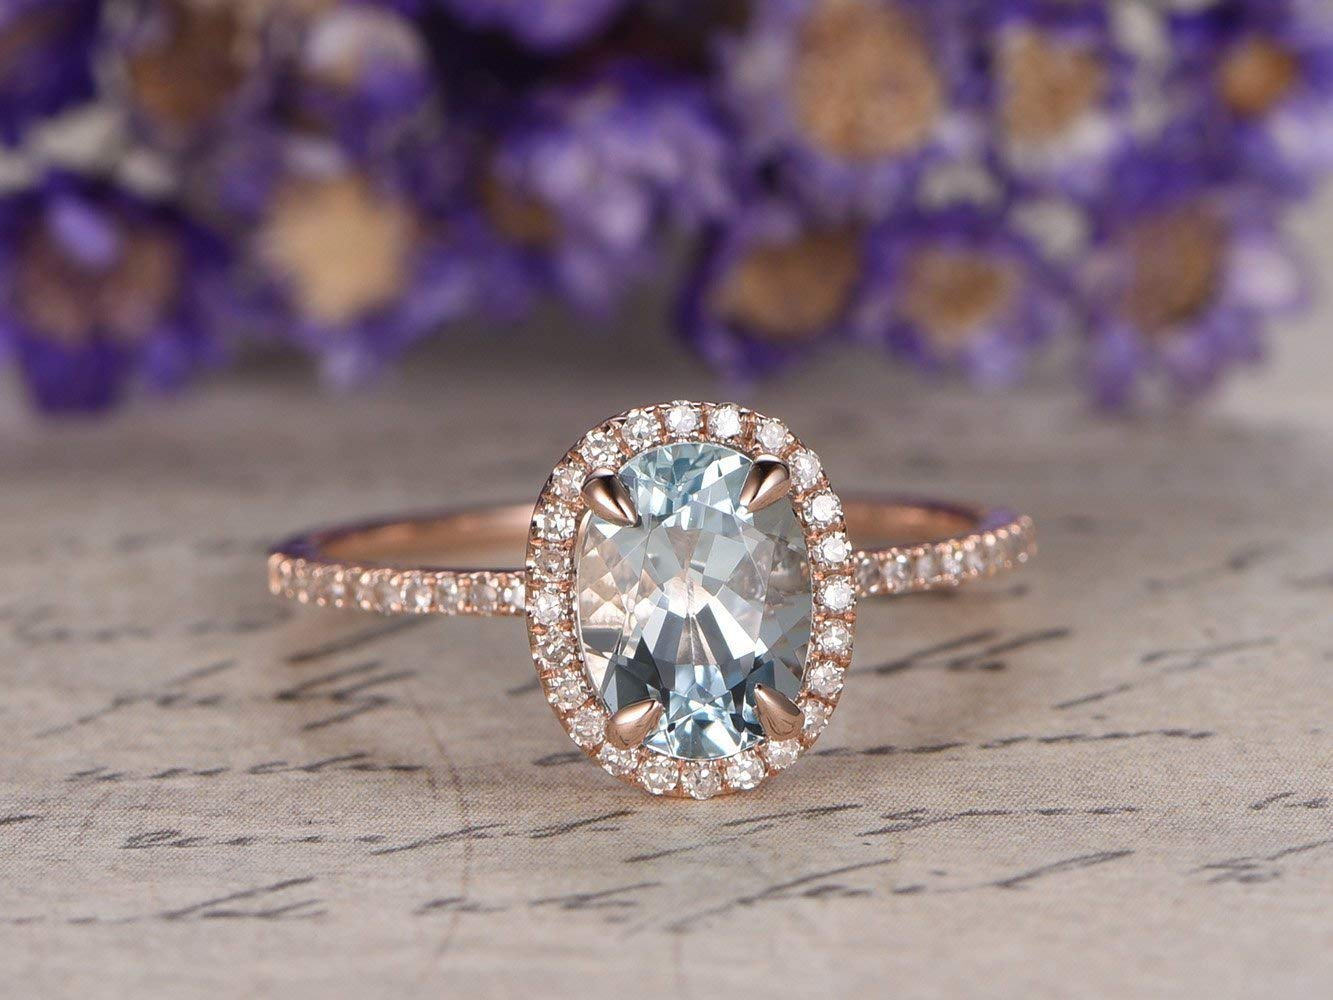 Amazon Com Blue Aquamarine Engagement Ring Natural 6x8mm Oval Cut Solid 14k Rose Gold Diamond Halo Rings Thin Wedding Band Bridal Ring Women Anniversary Gift March Birthstone Claws Prong Handmade